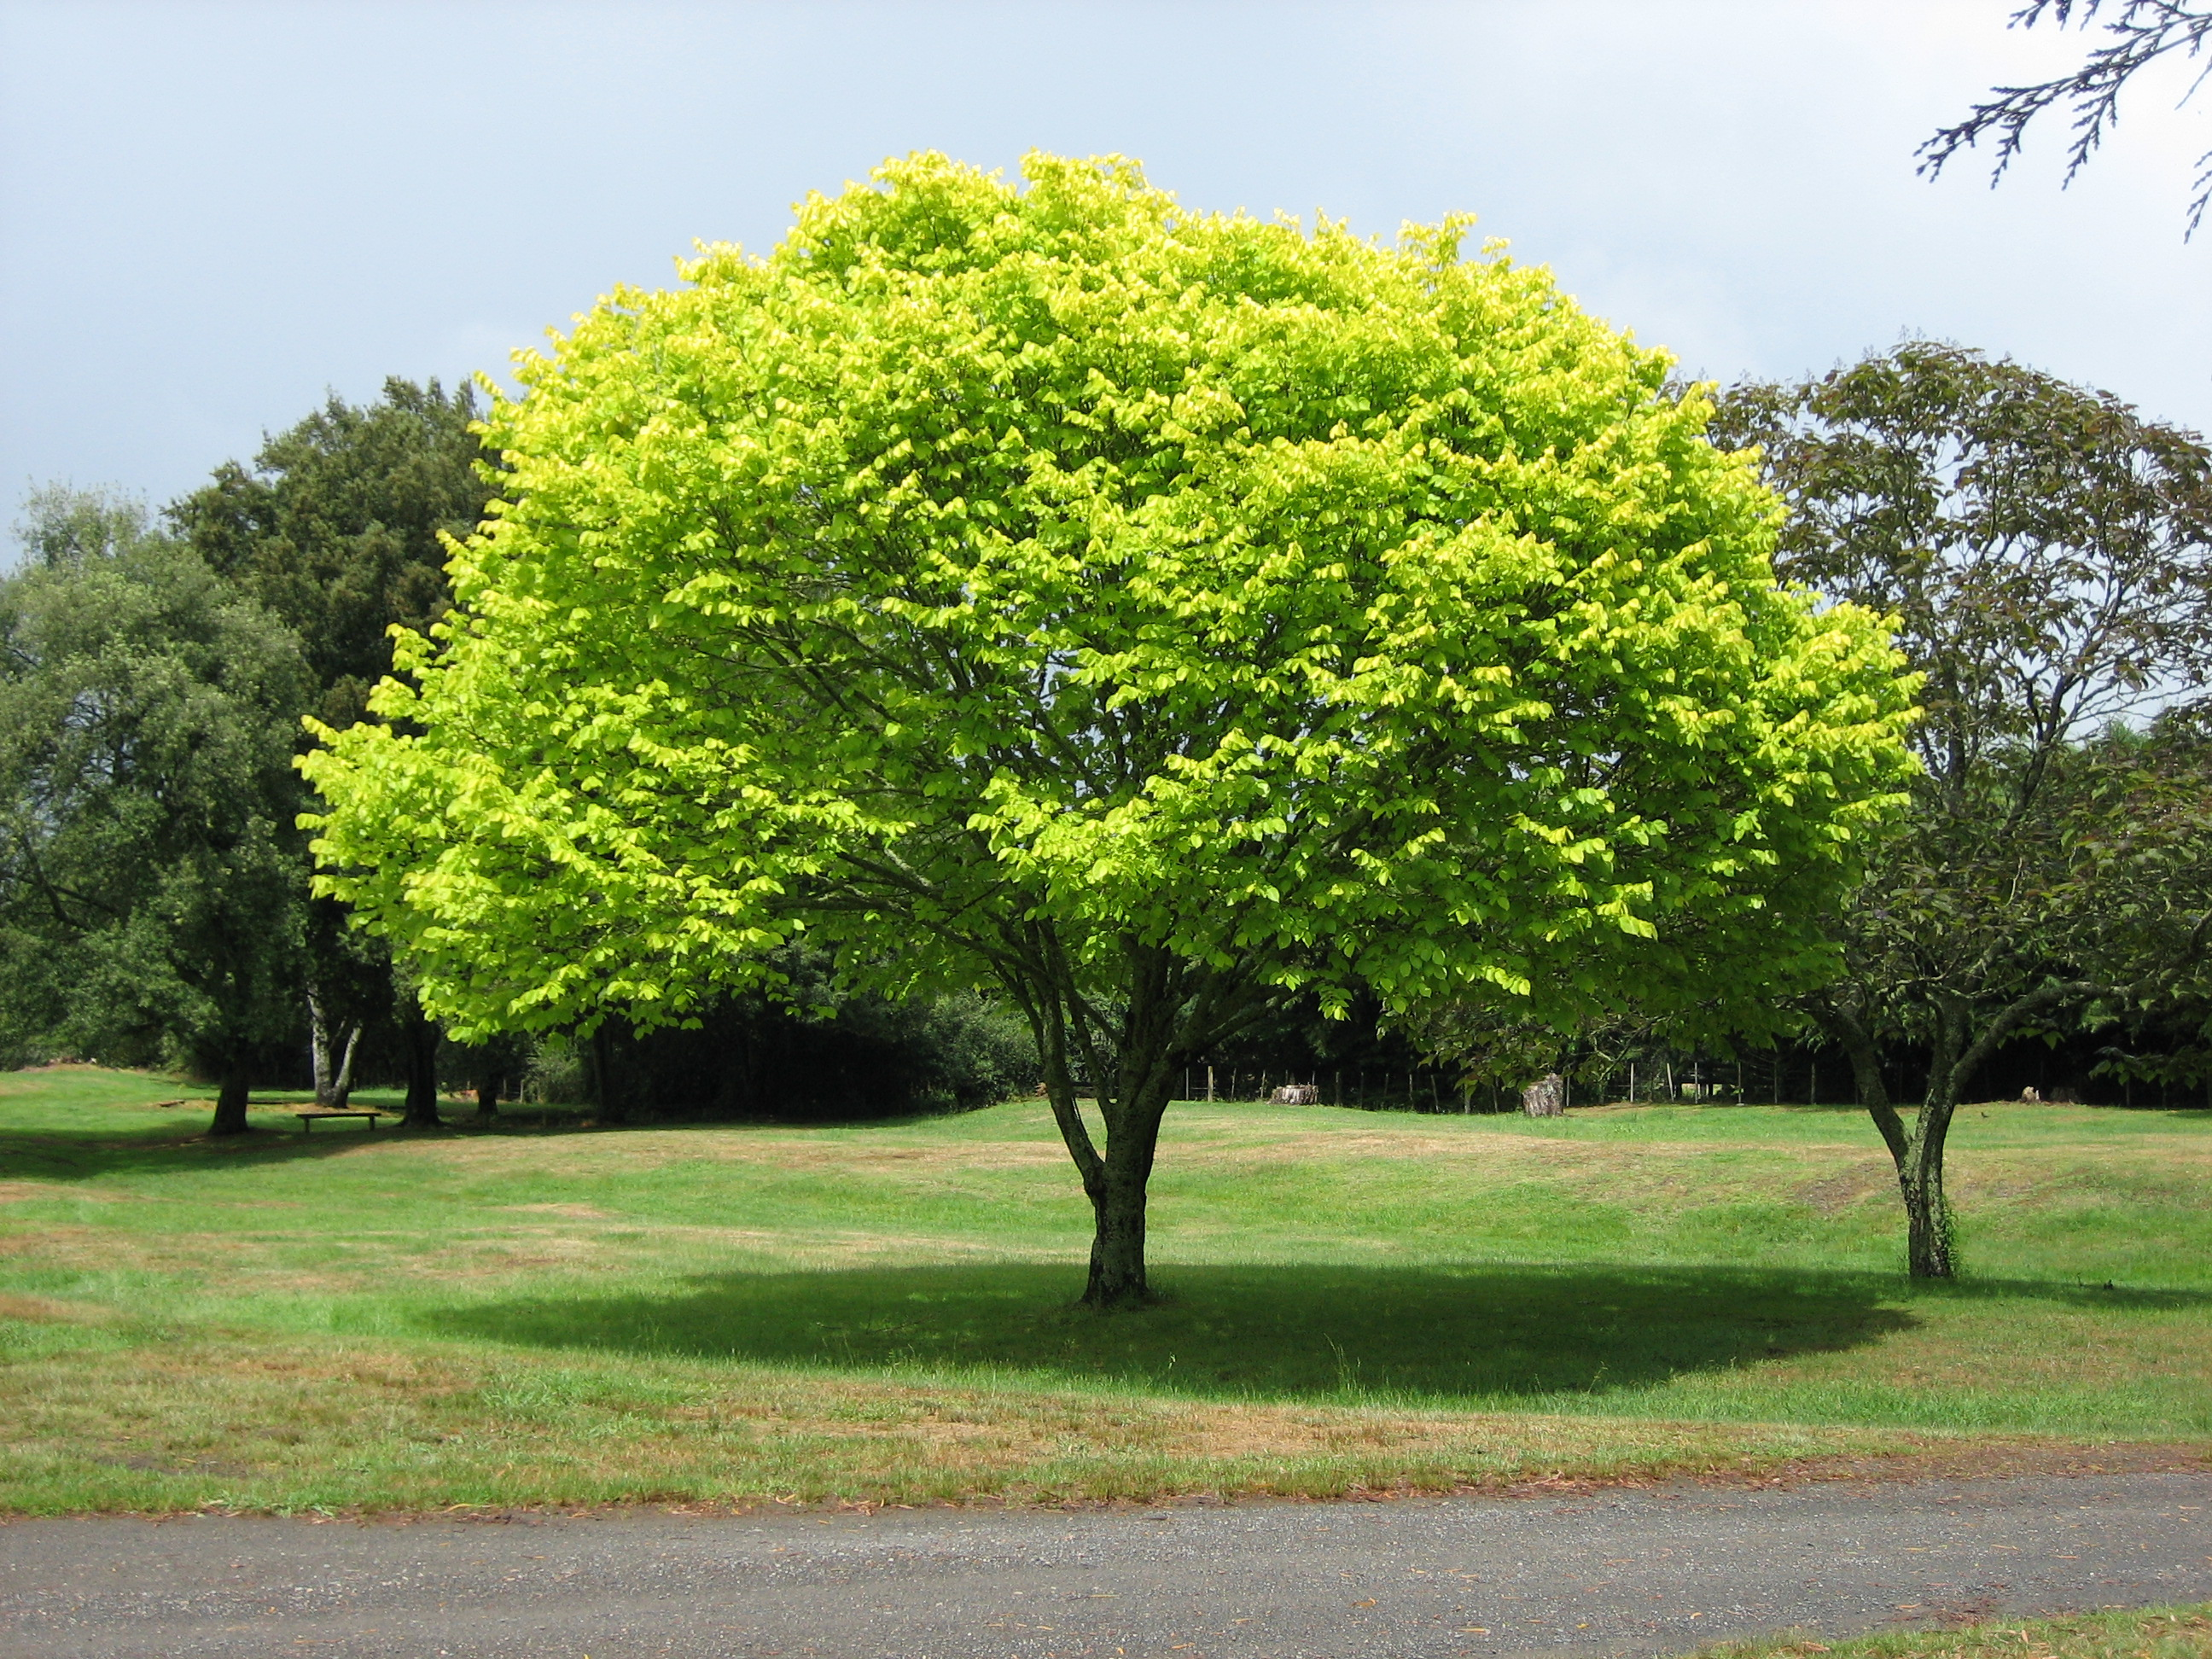 http://commercialtenantresource.files.wordpress.com/2010/01/bright_green_tree.jpg